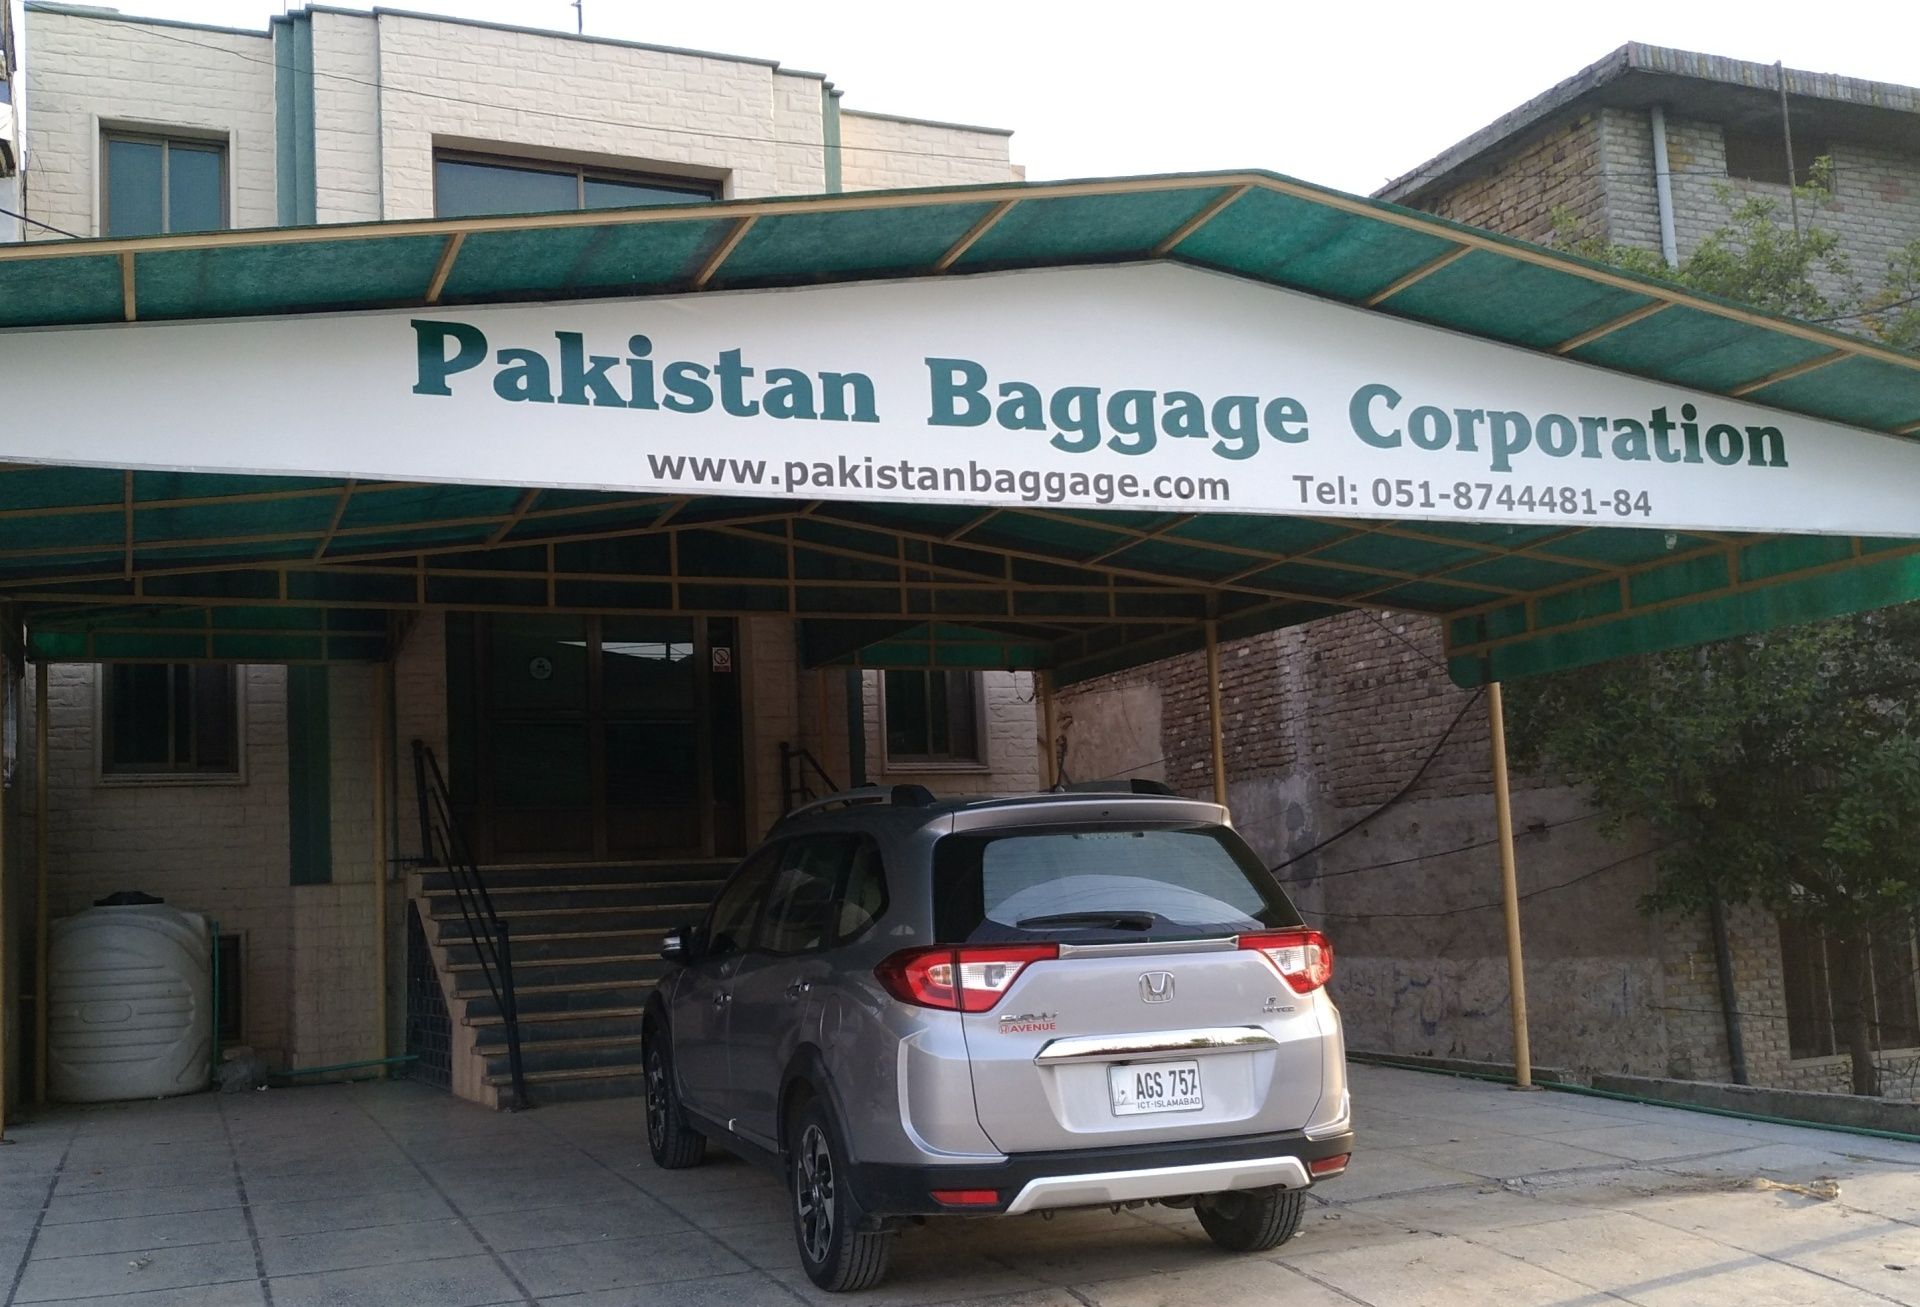 About Pakistan Baggage